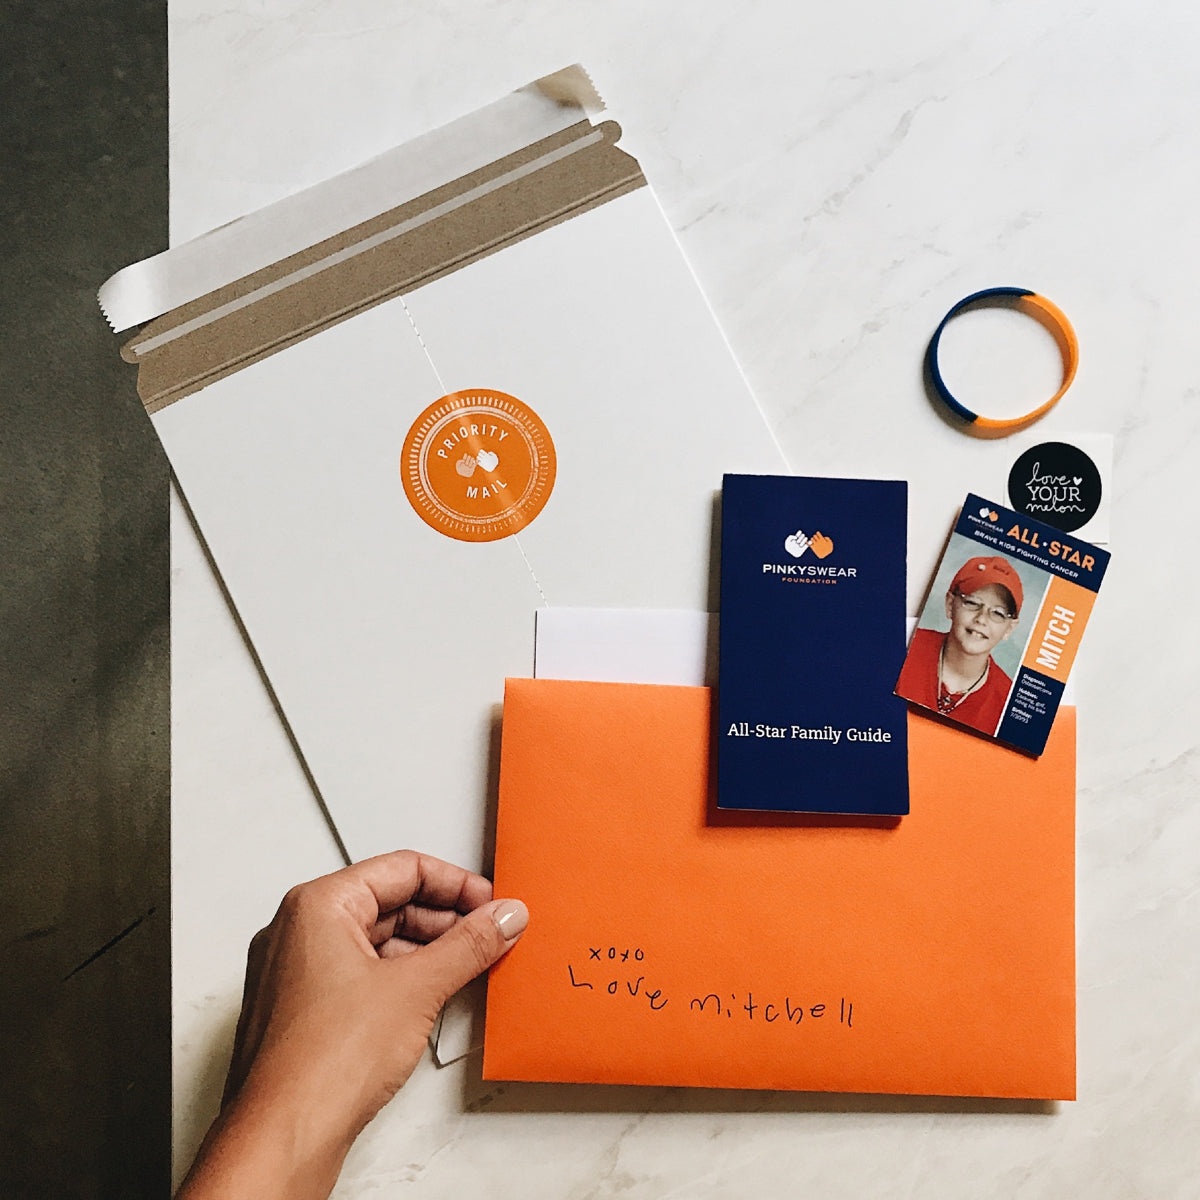 PINKY SWEAR FOUNDATION: THE ORANGE ENVELOPE PROGRAM